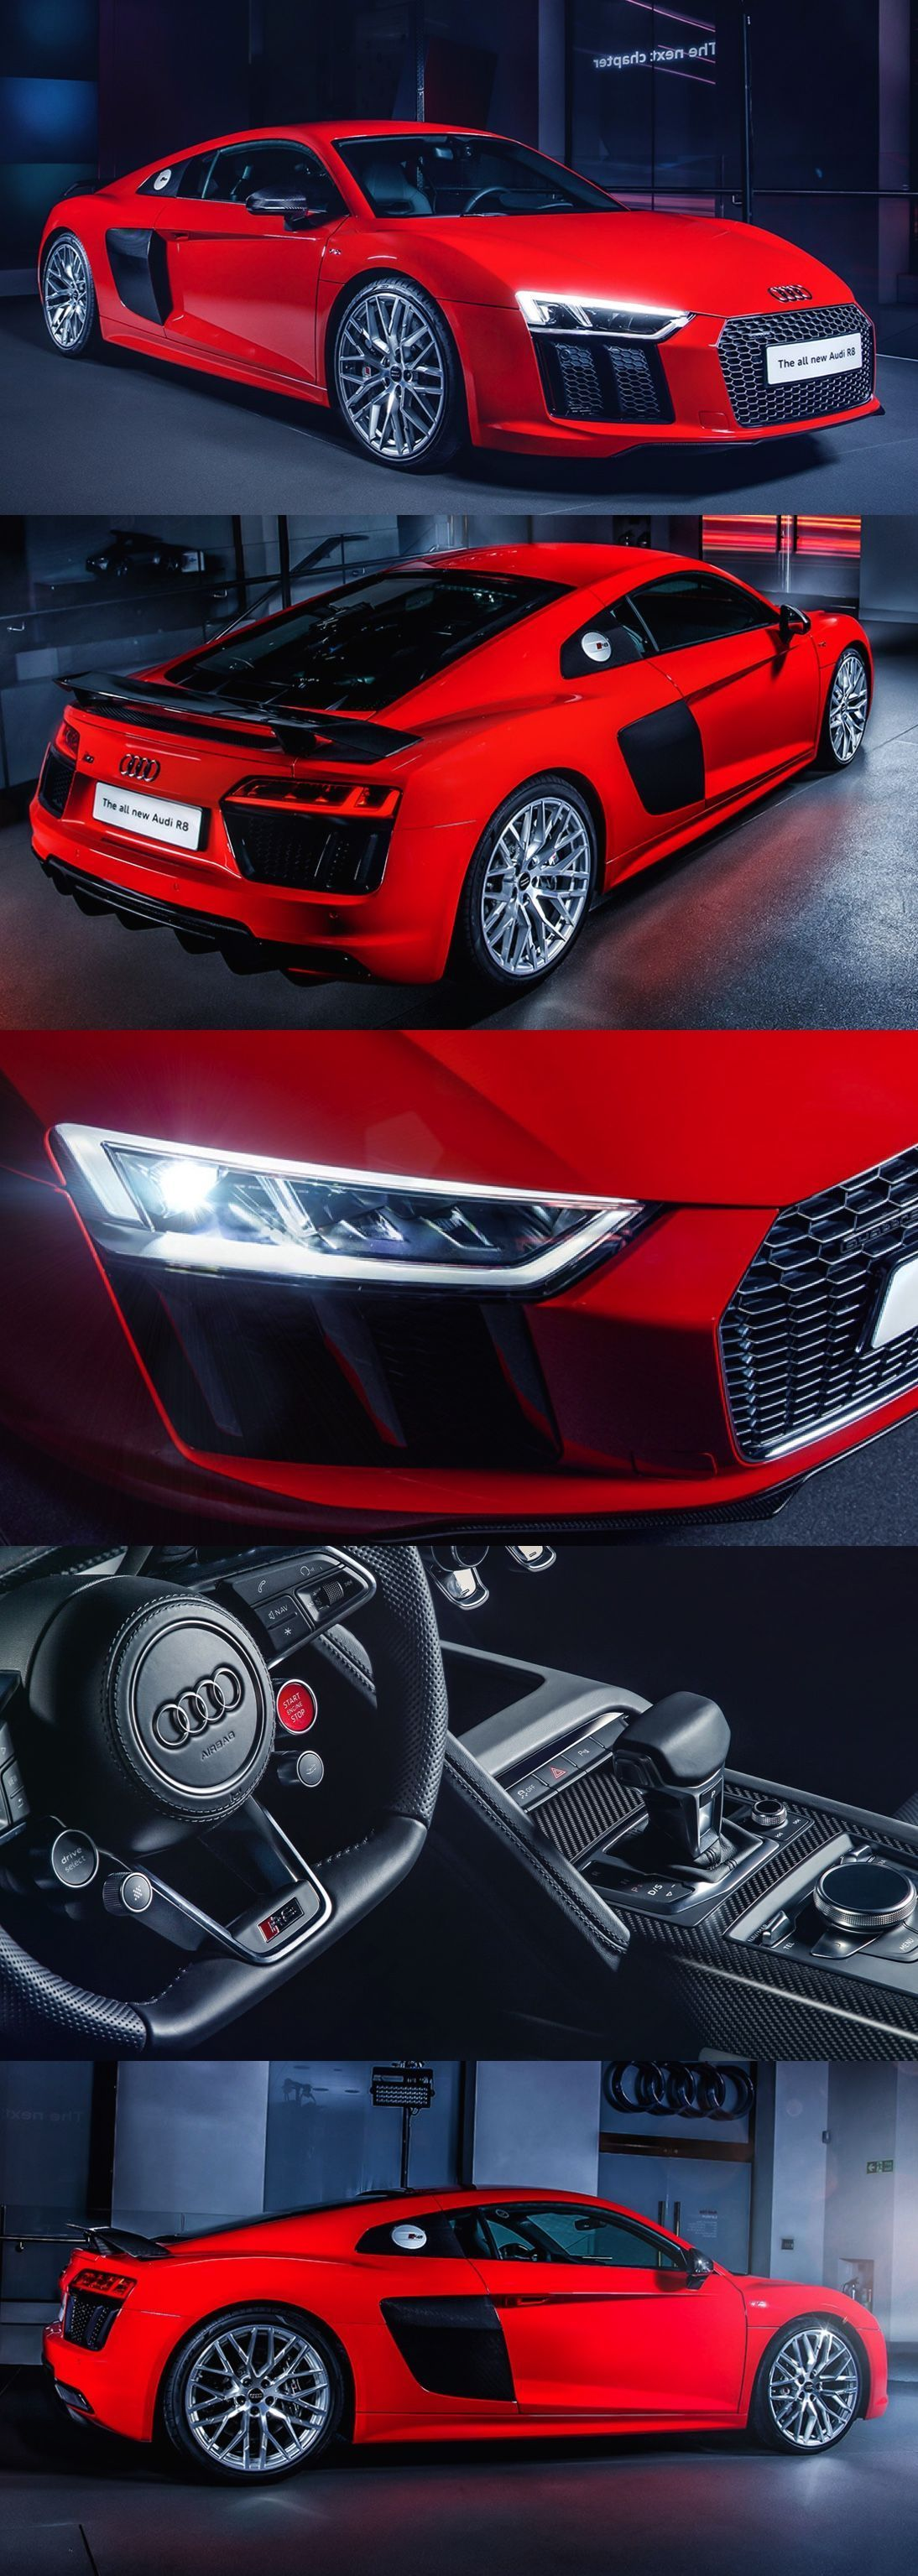 Audi R8 V10 Plus 0 62 Mph In 3 2 Seconds 0 124mph In 9 9 Seconds Top Speed 205mph Combined Mpg 23 9 Audir8